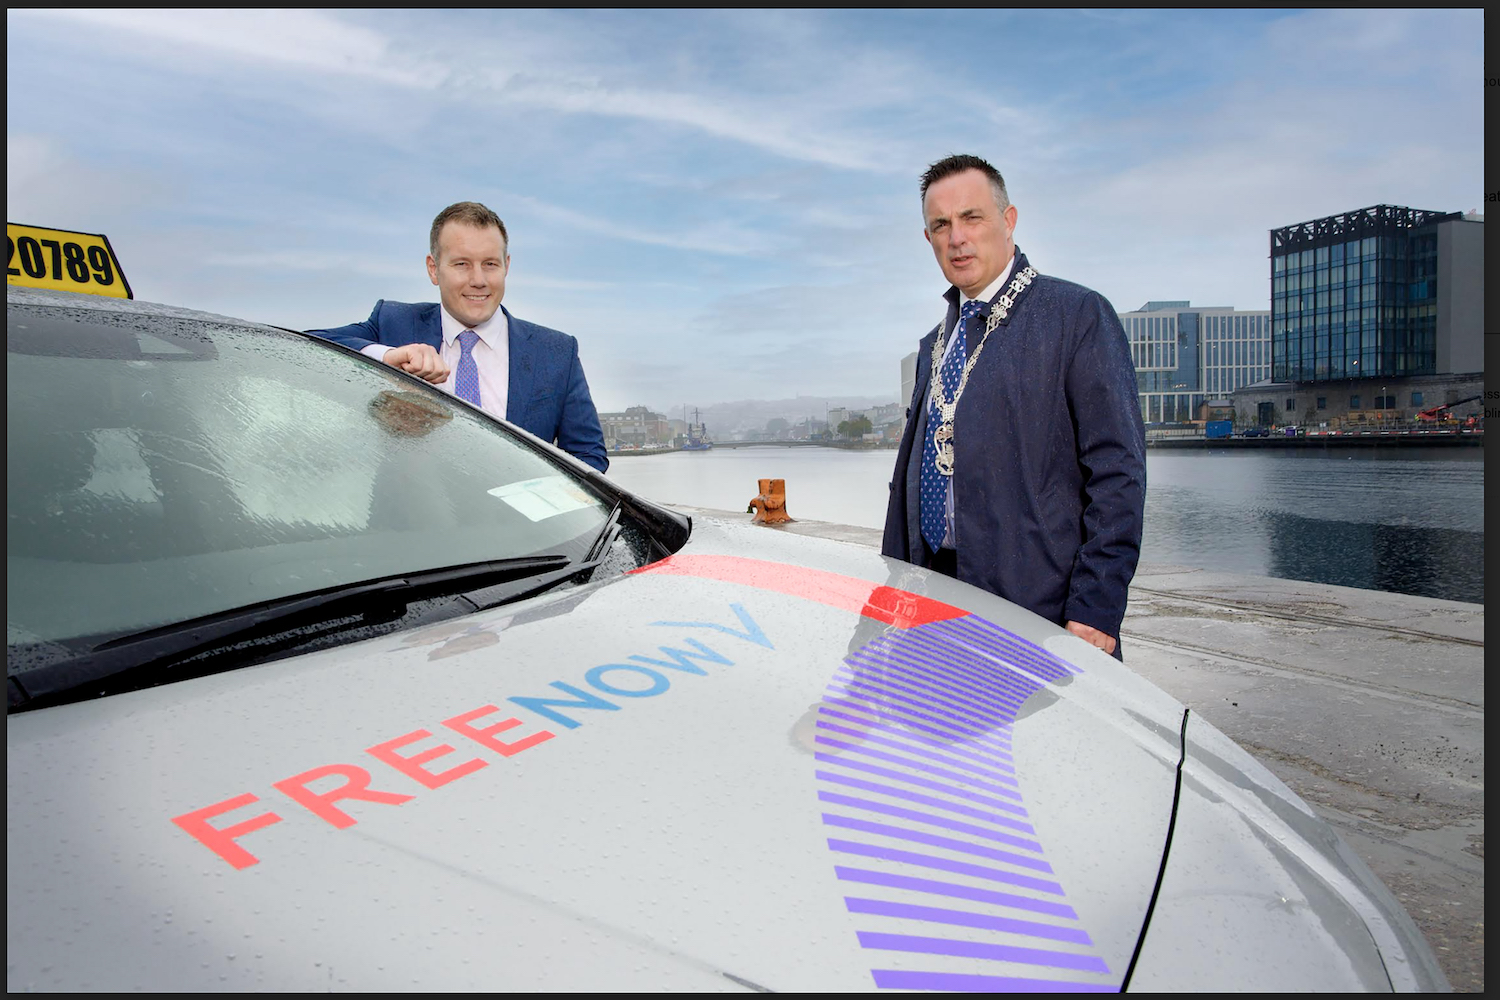 Car News | Free Now expands EV bookings to Cork, Limerick, and Galway | CompleteCar.ie